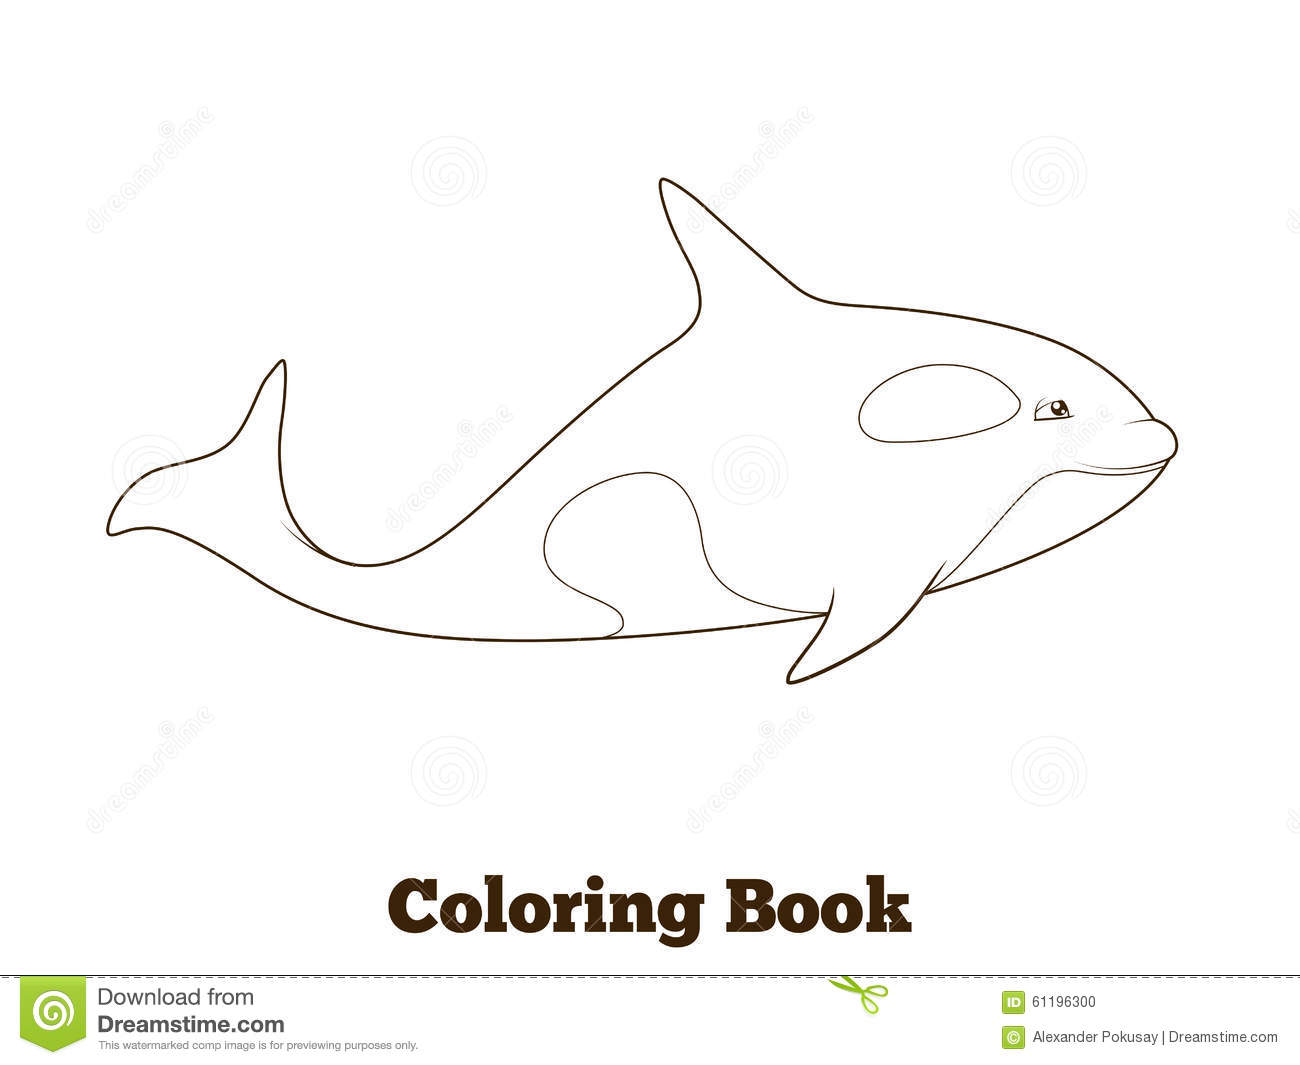 Coloring book whale - Whale Orca Cartoon Coloring Book Vector